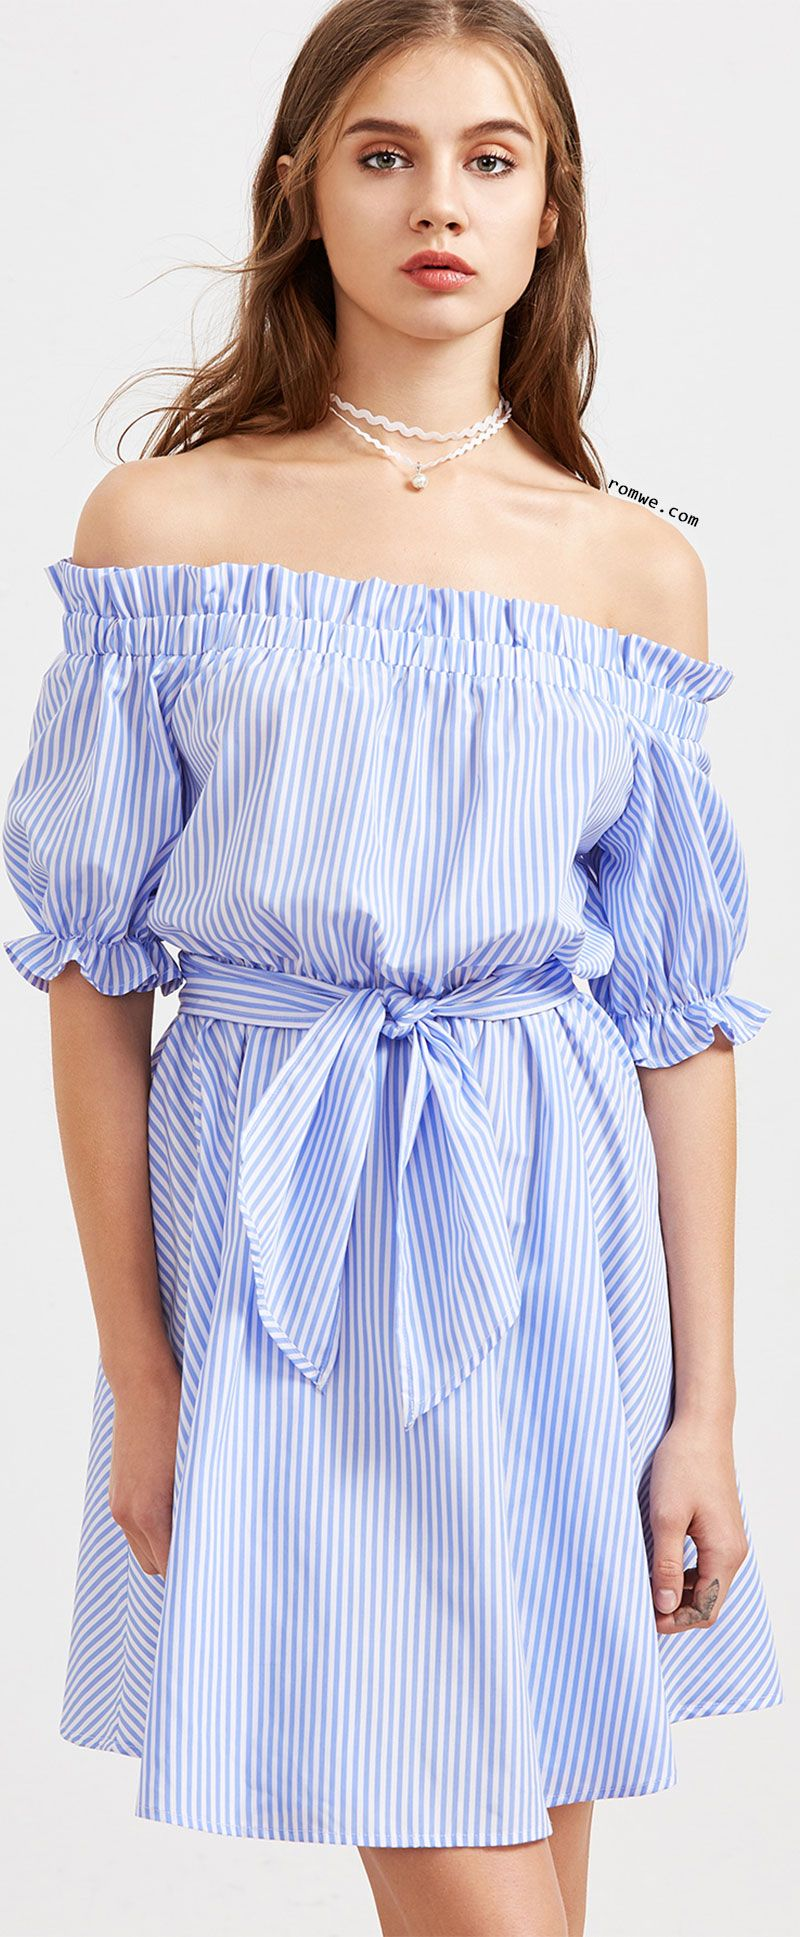 5213c82f0302 Blue Striped Ruffle Detail Belted Off The Shoulder Dress